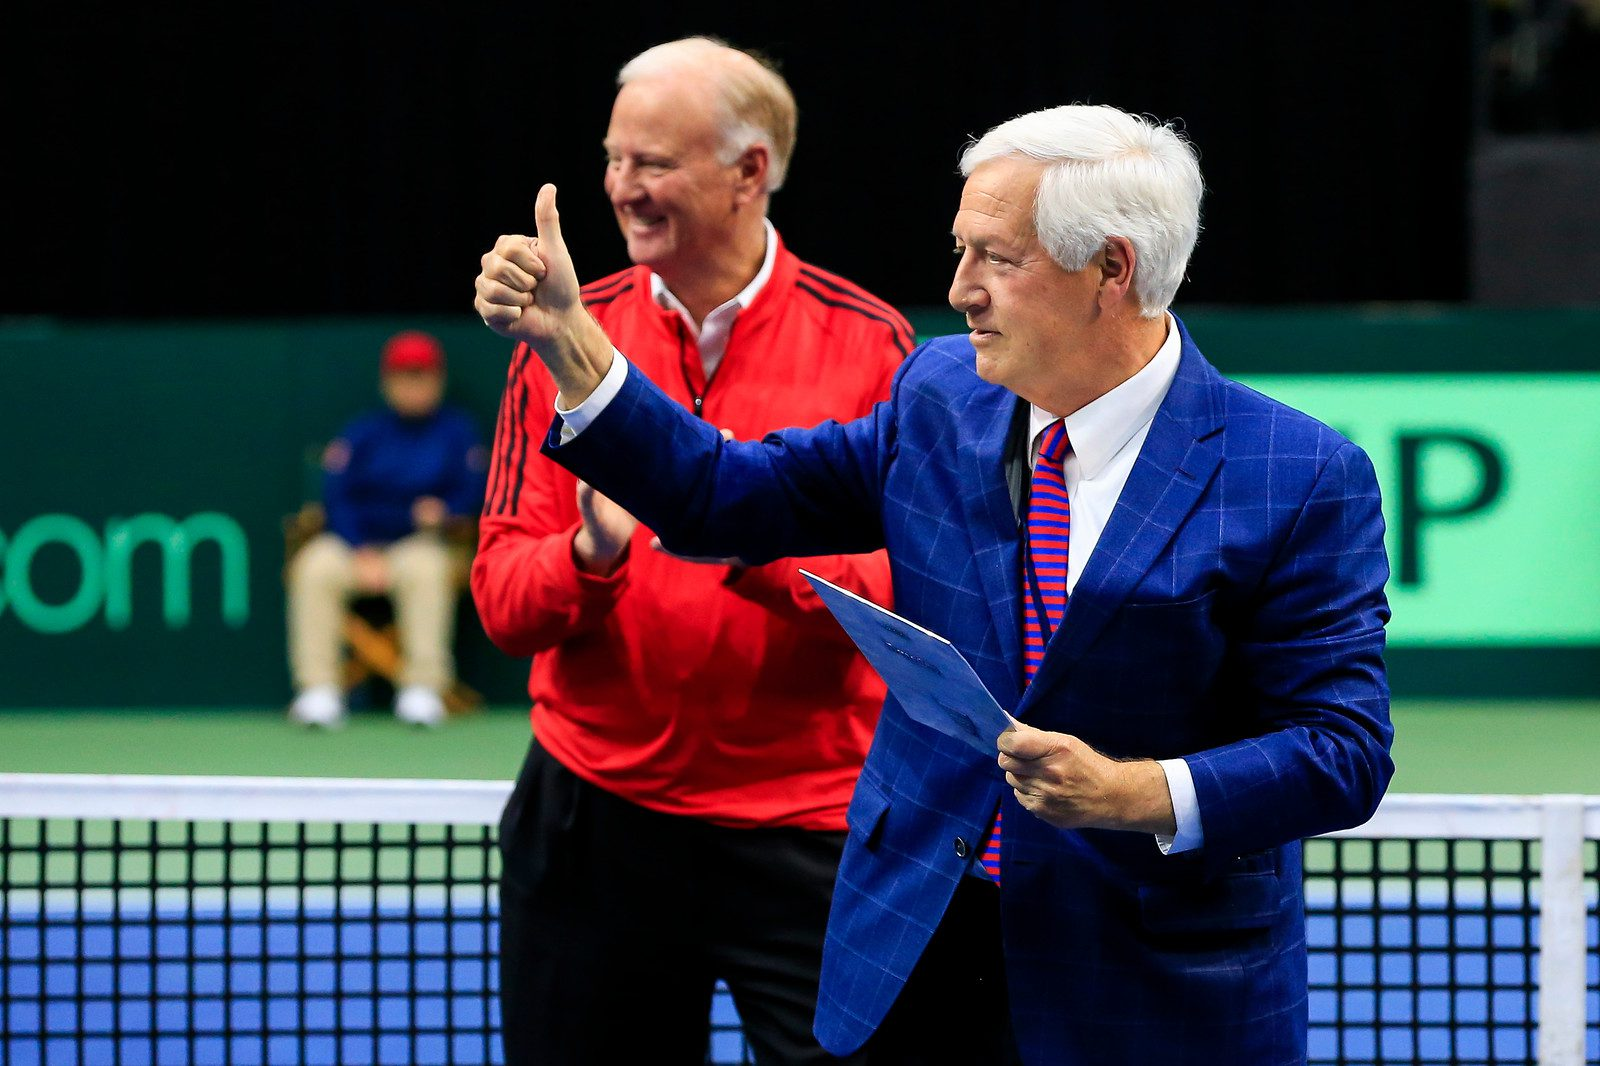 Dr. Fisher with J. Wayne Richmond at Davis Cup at Belmont